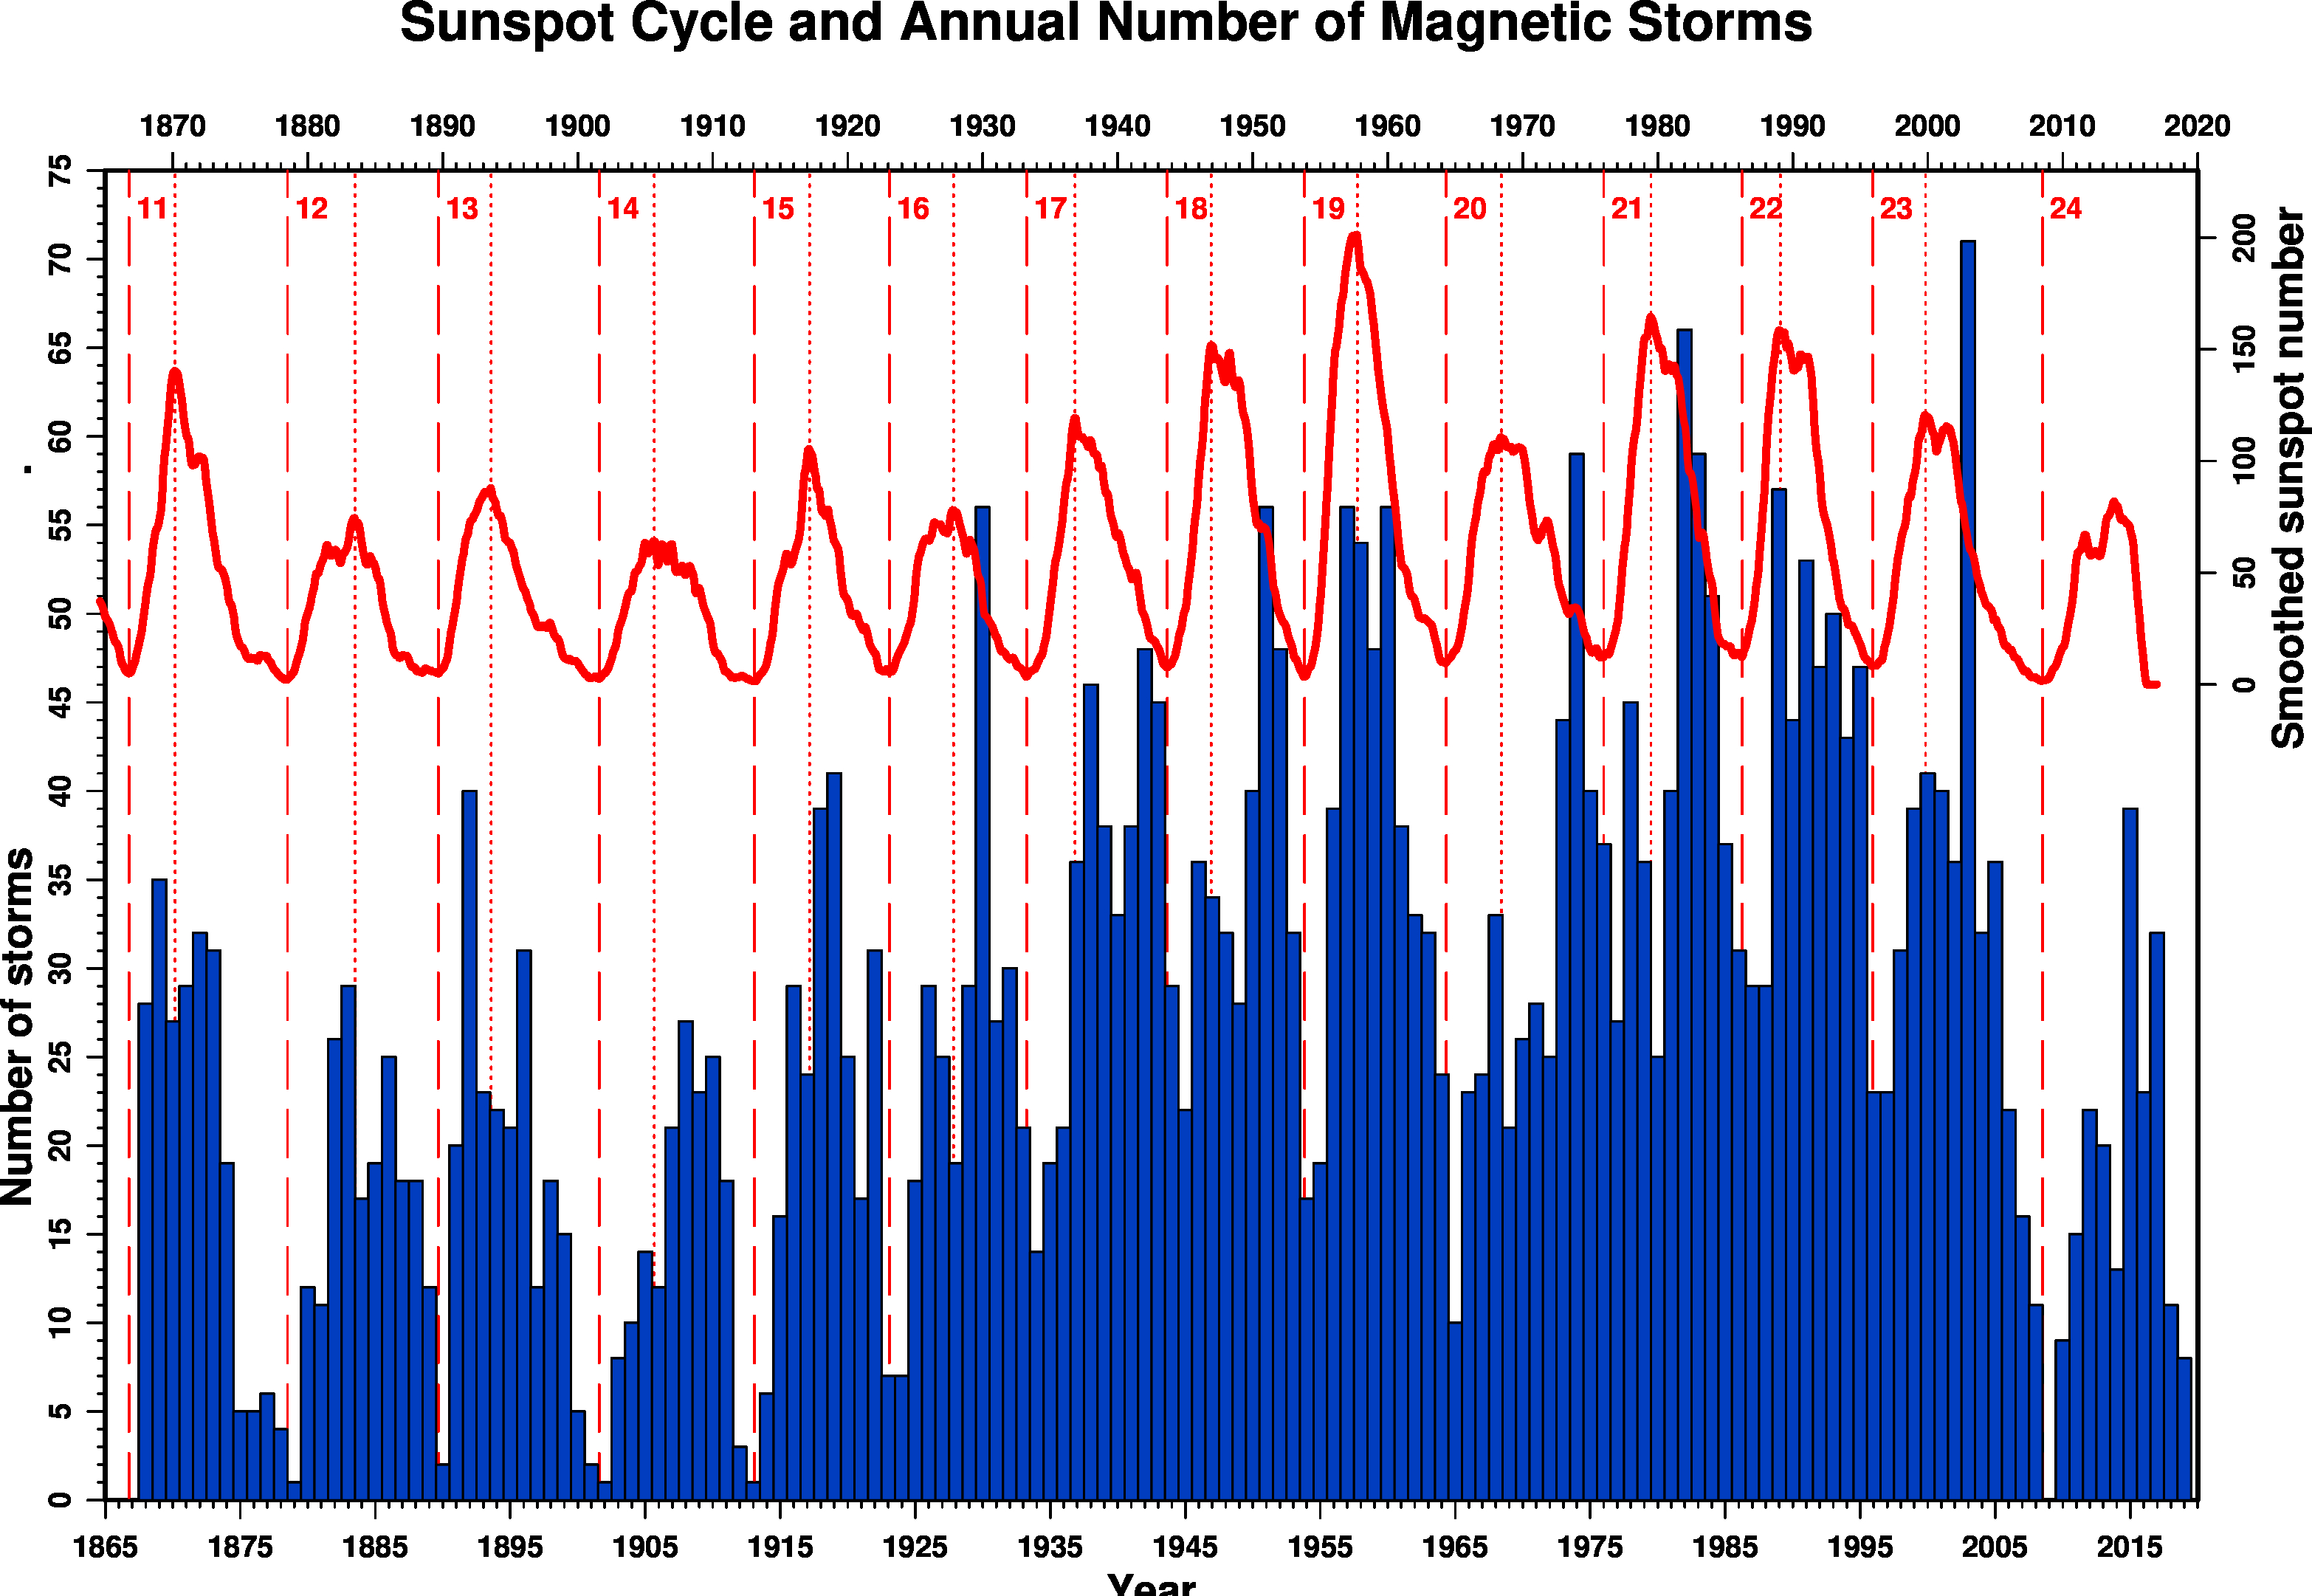 Geomagnetic Storms vs Sunspots